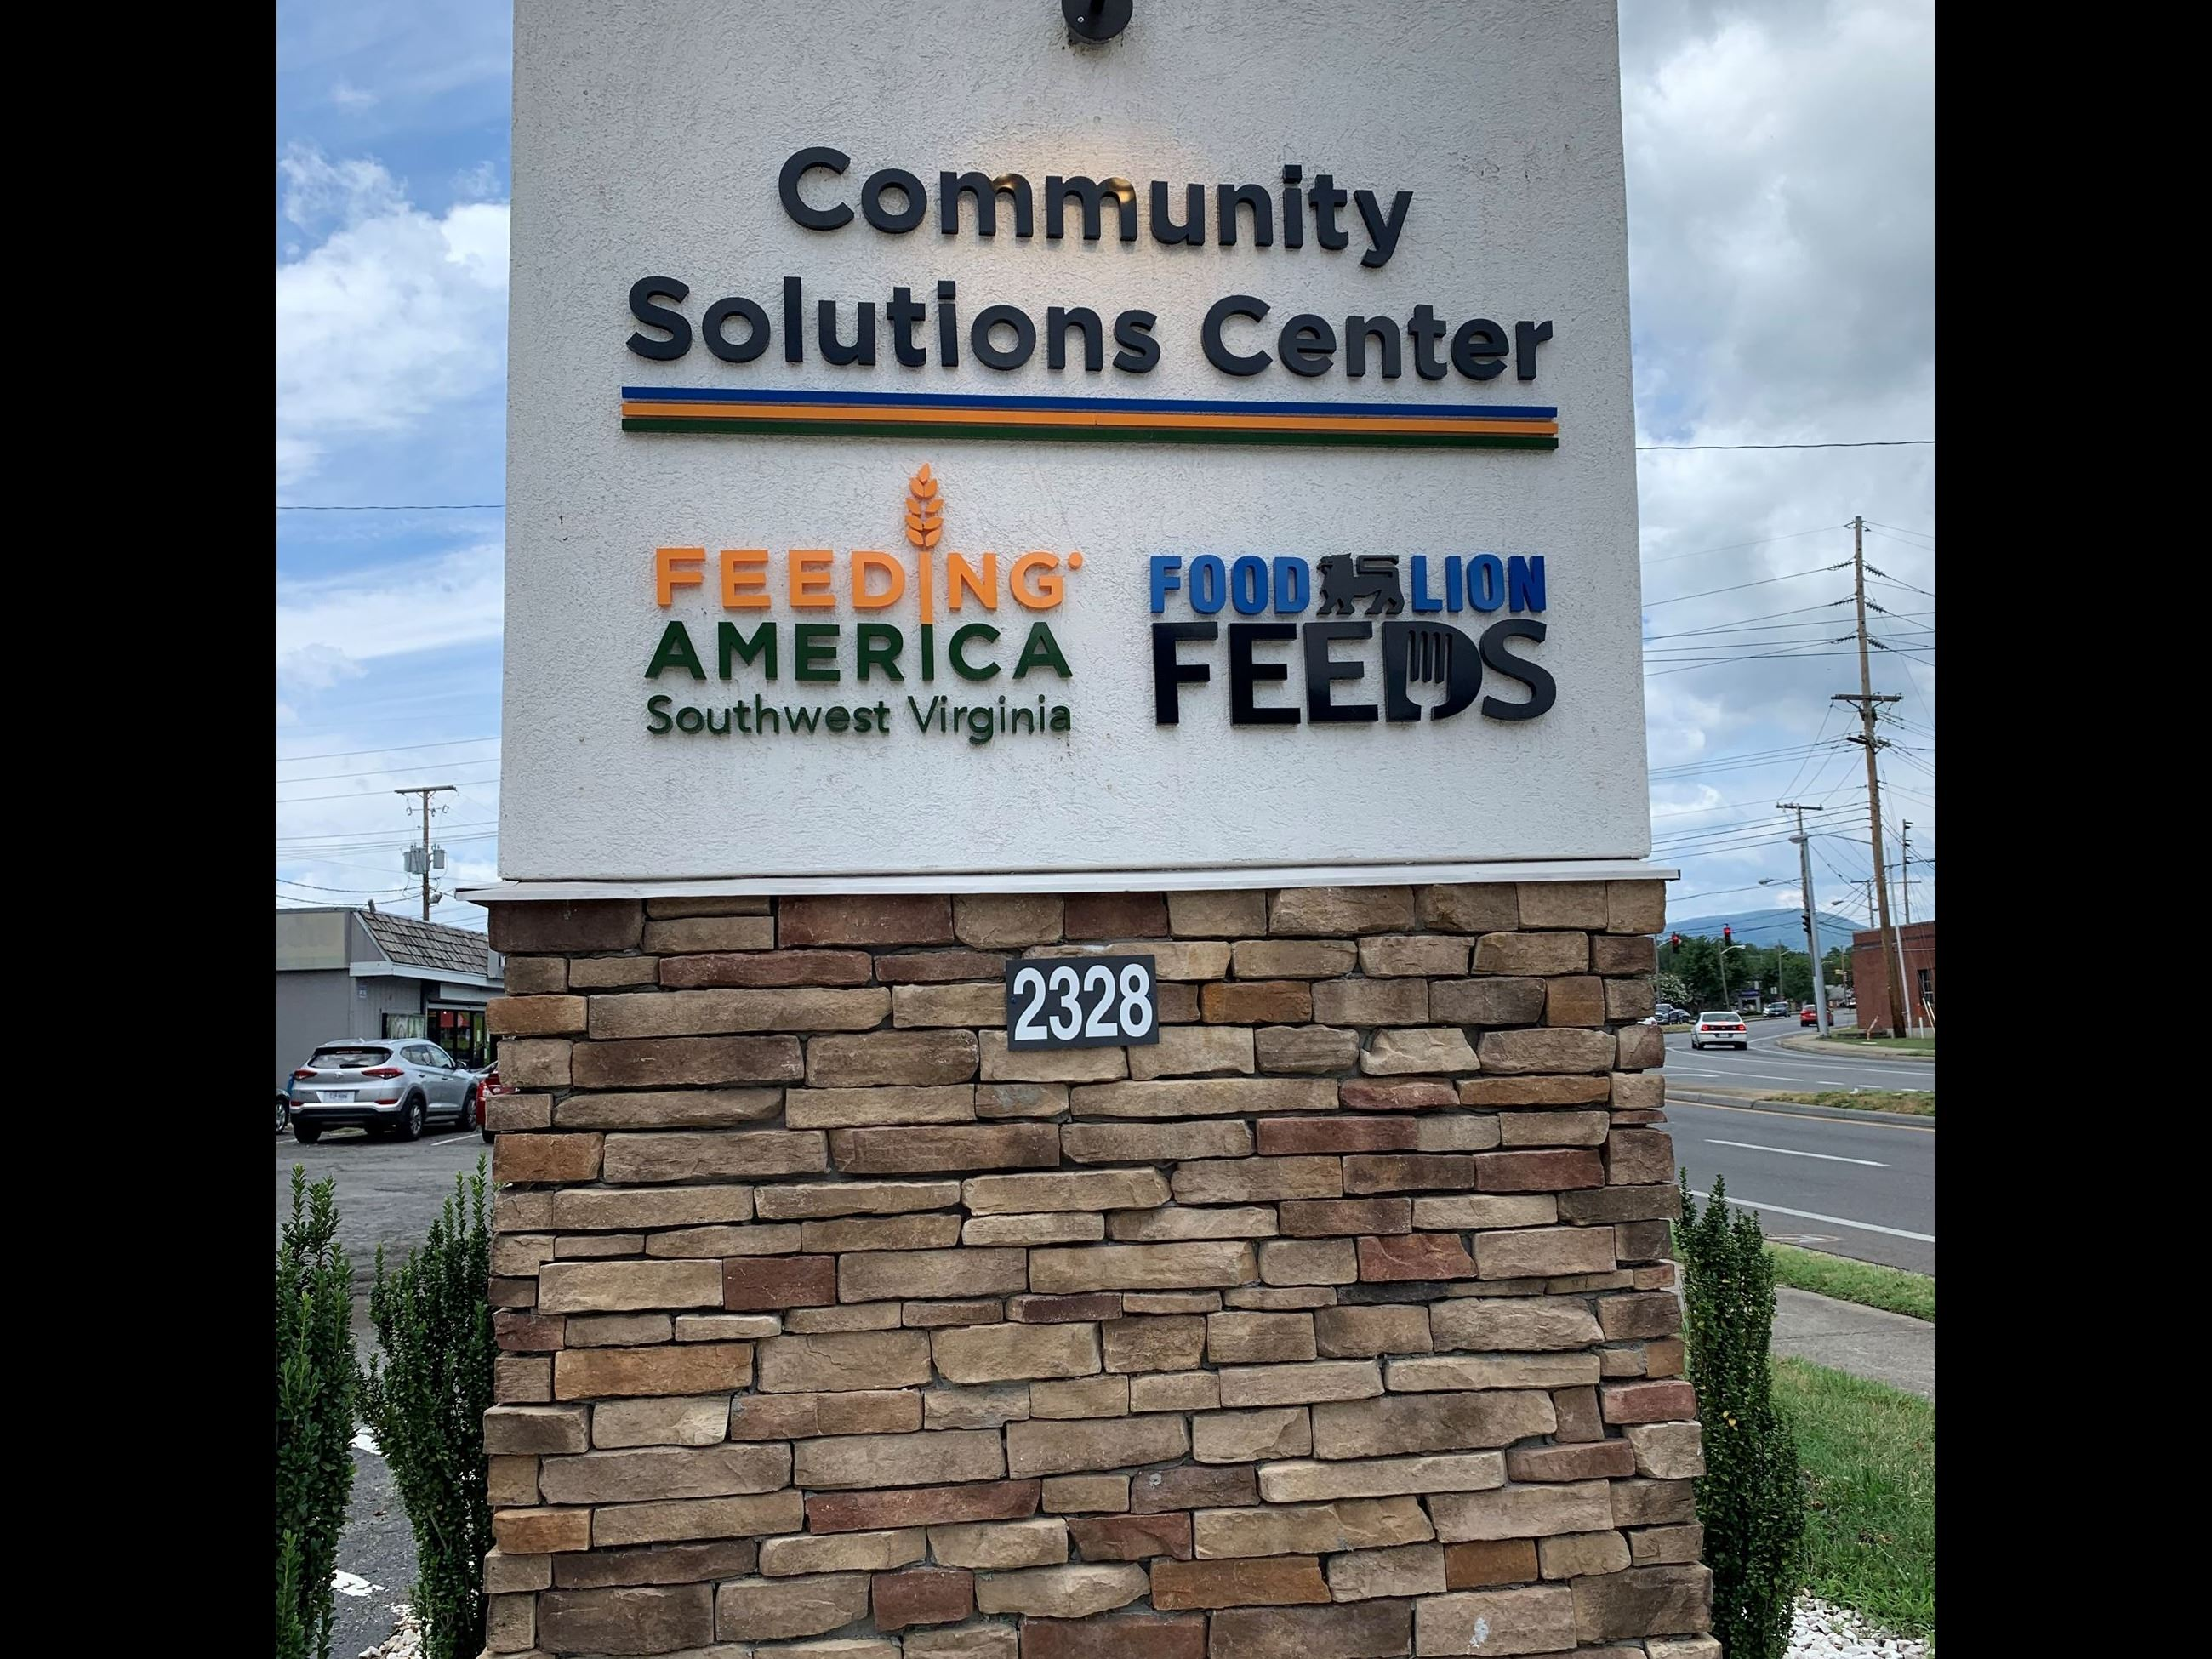 Community Solutions Center